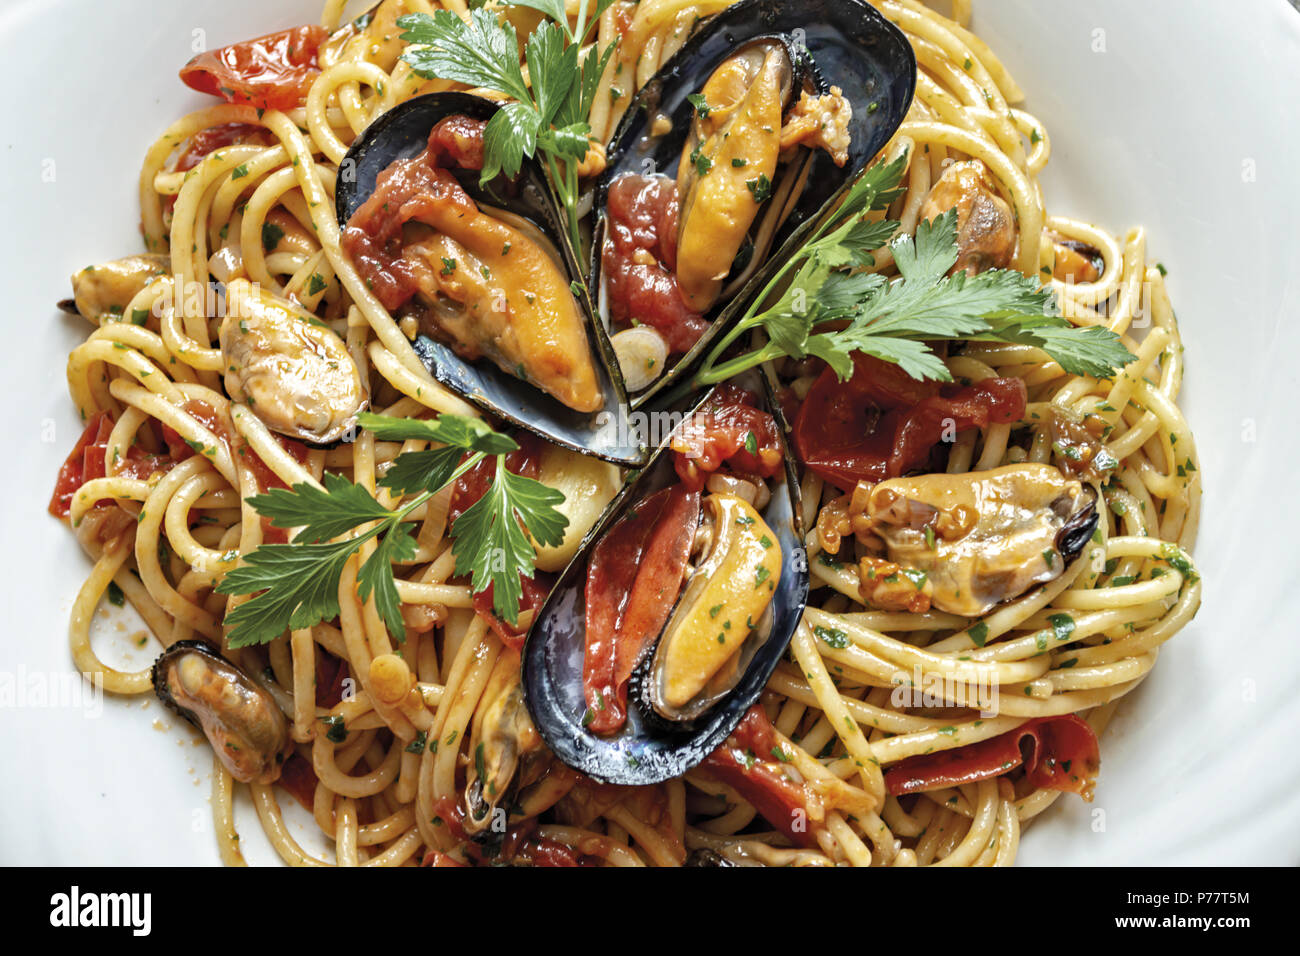 spaghetti pasta with mussels tomato and parsley - Stock Image